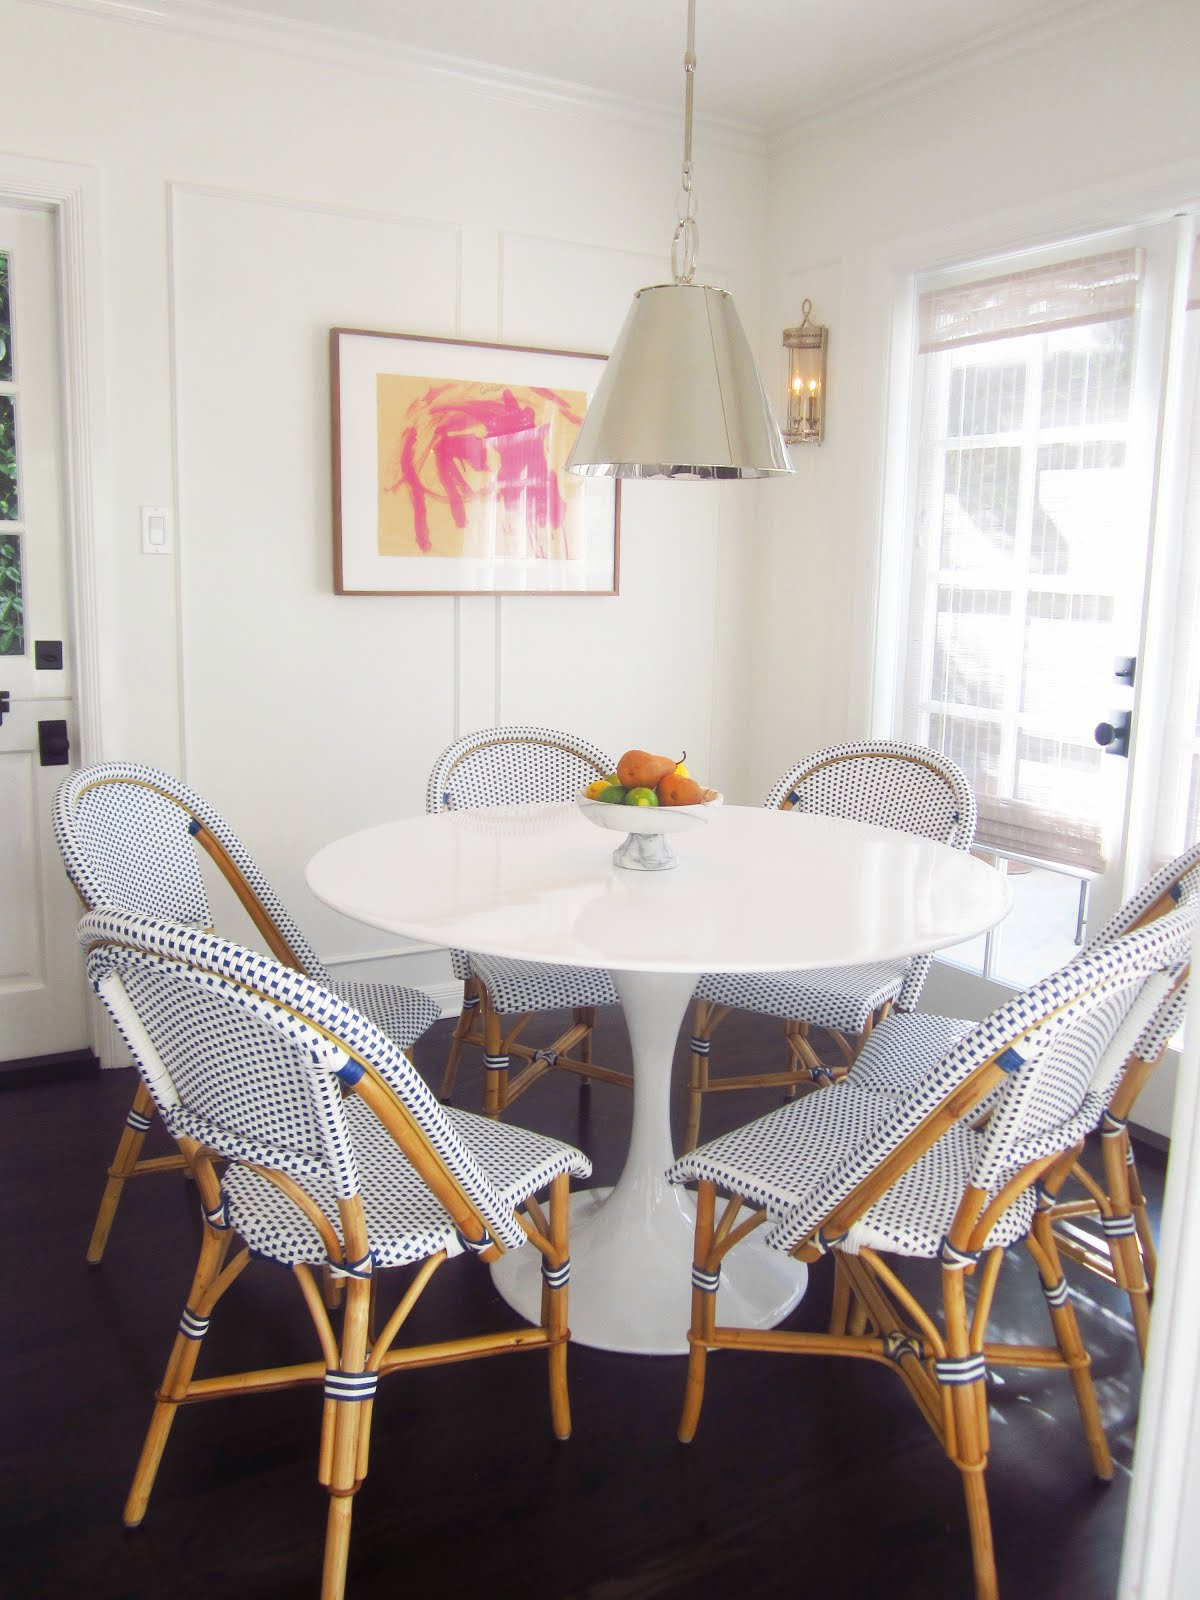 Breakfast Nook Kitchen Table and Chairs